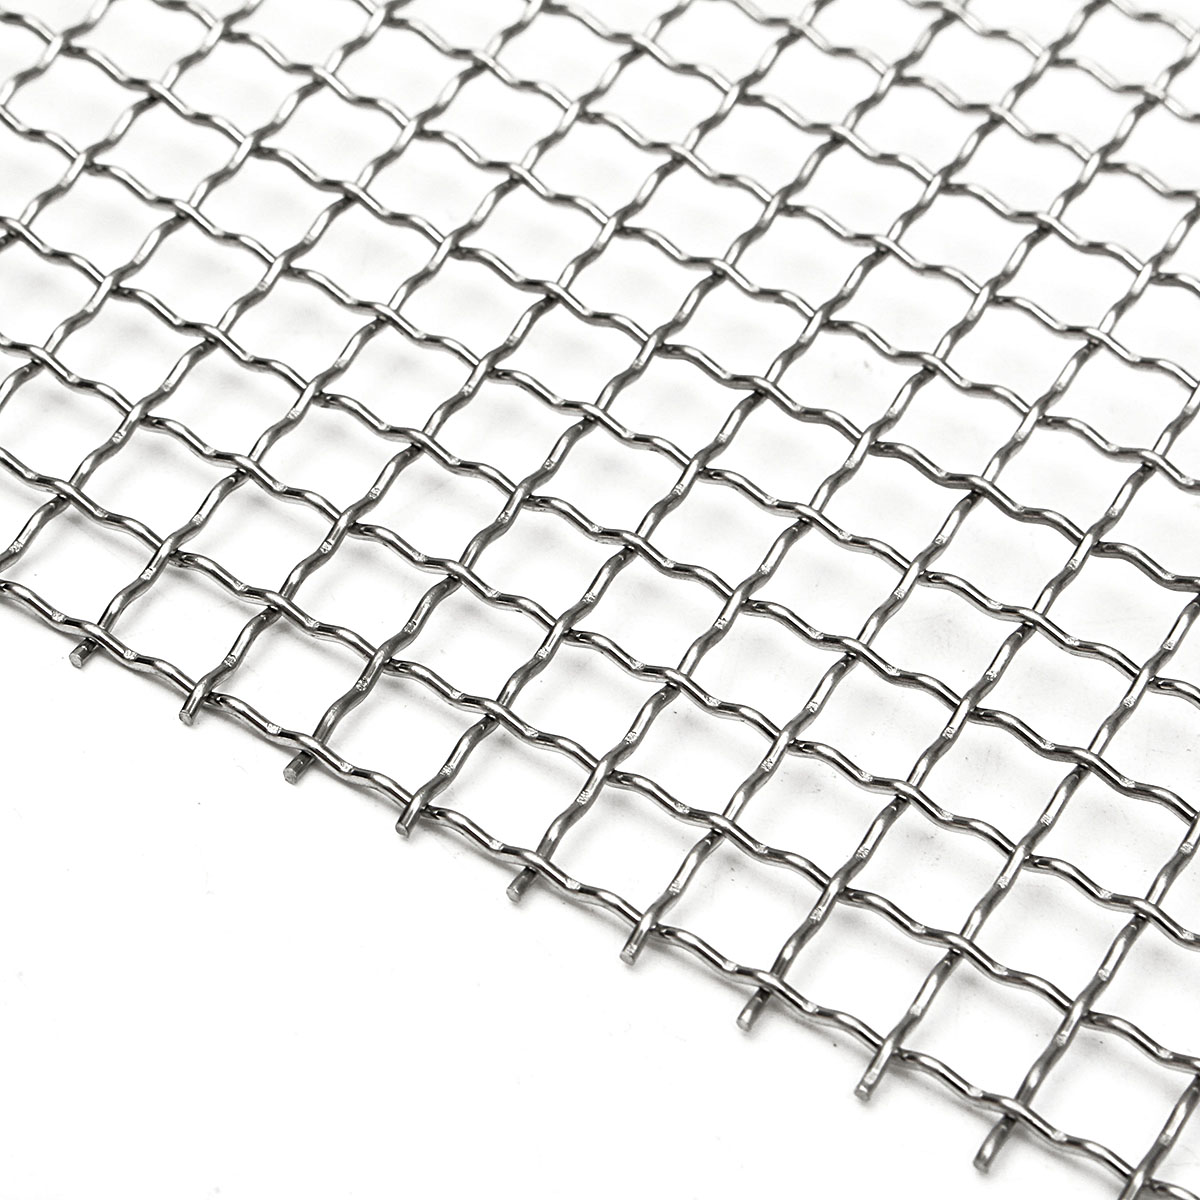 30x30cm 304 Stainless Steel 4 Mesh Filter Water Filtration